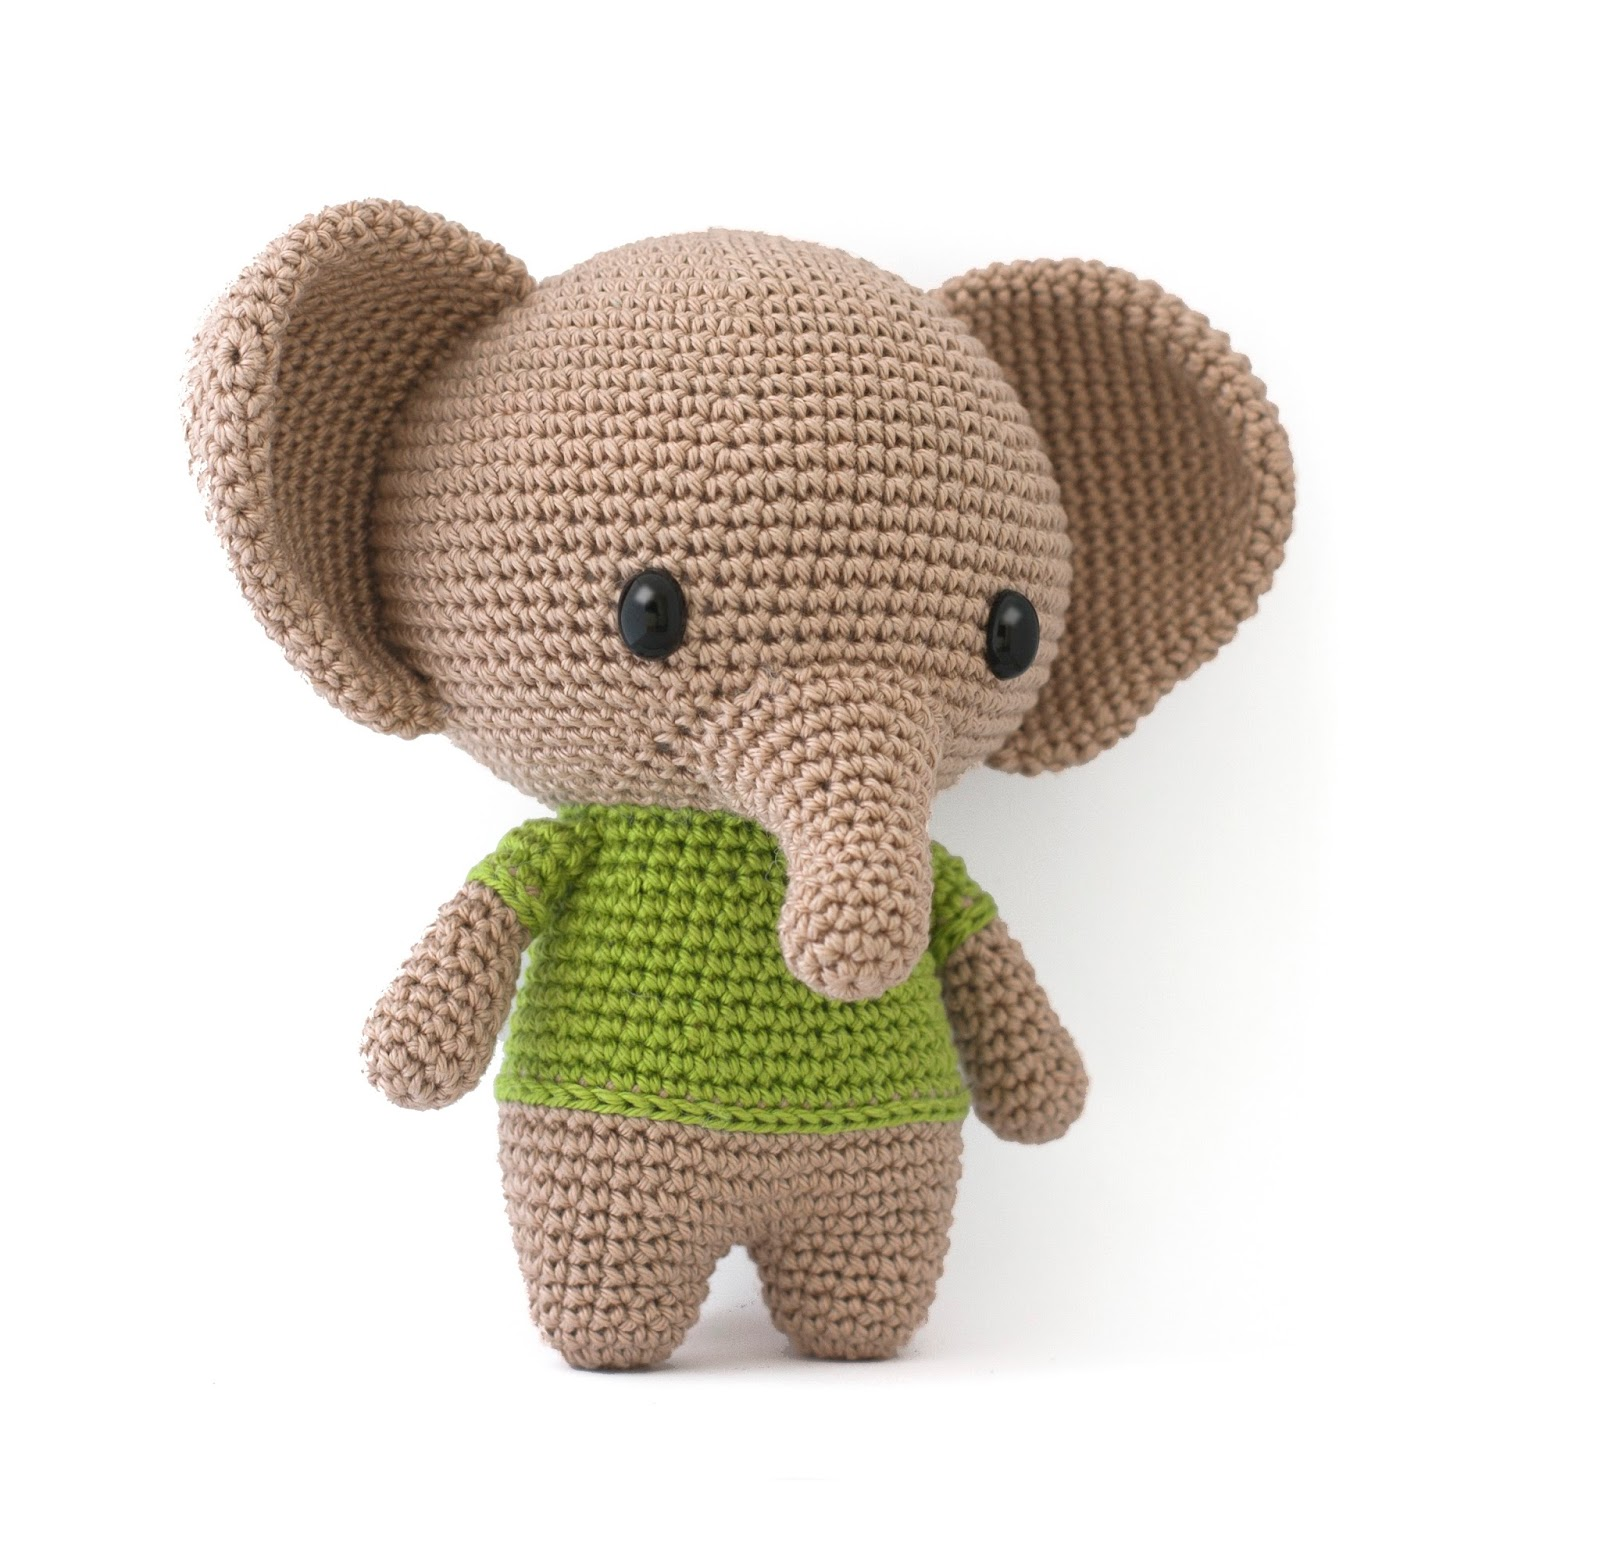 Toy Patterns by DIY Fluffies : Joe the elephant crochet ...